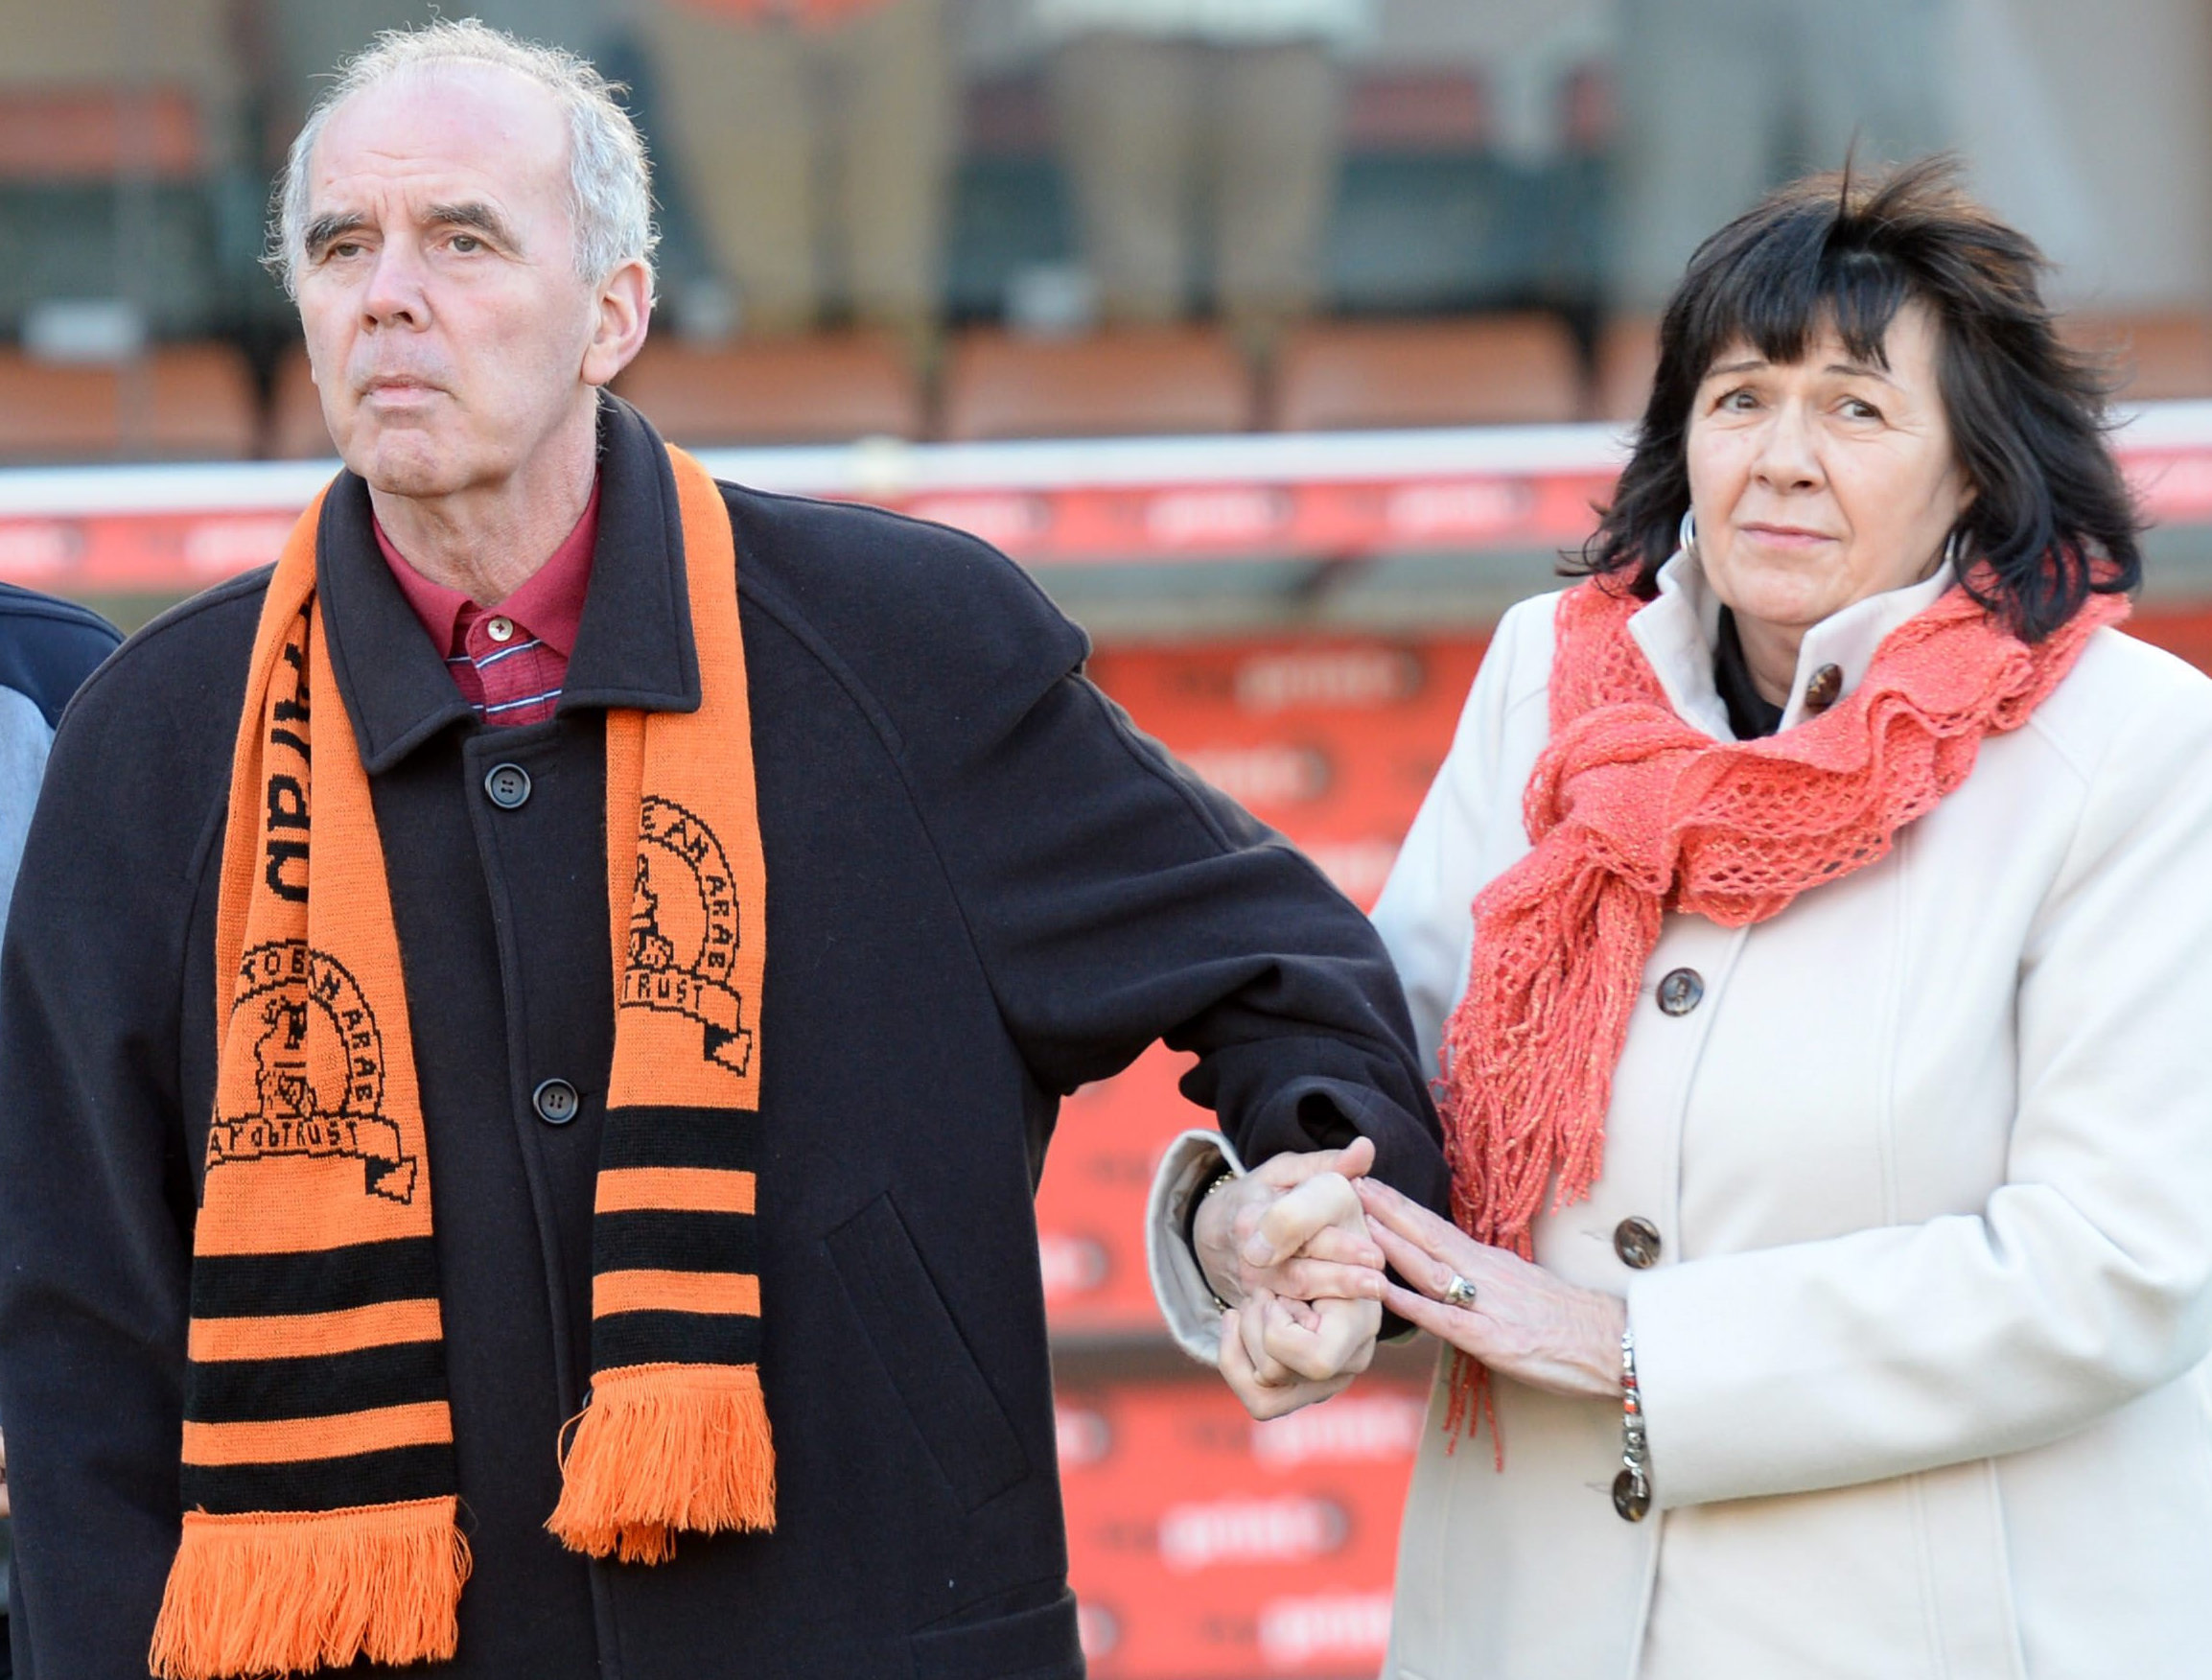 'Frank's Law' is nemmed fir former fitba star Frank Kopel, pictured wi his wife Amanda